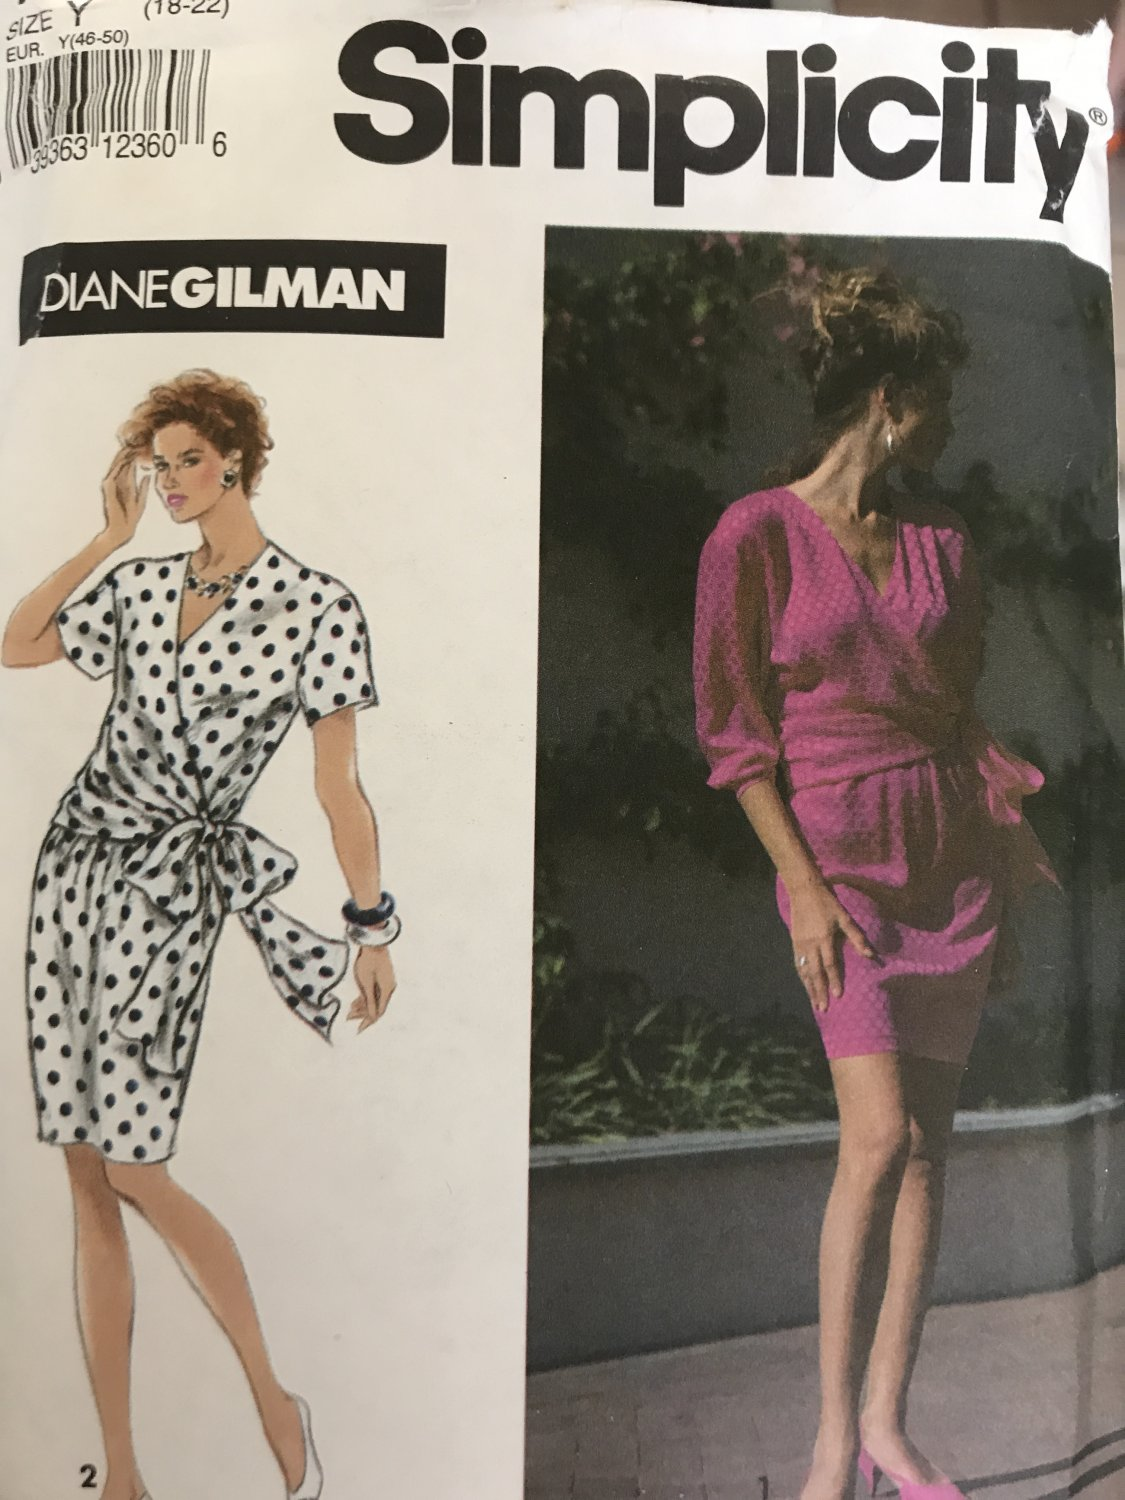 Simplicity 7761 Diane Gilman - Misses'  Summer Dress Sewing Pattern Size 18 - 22